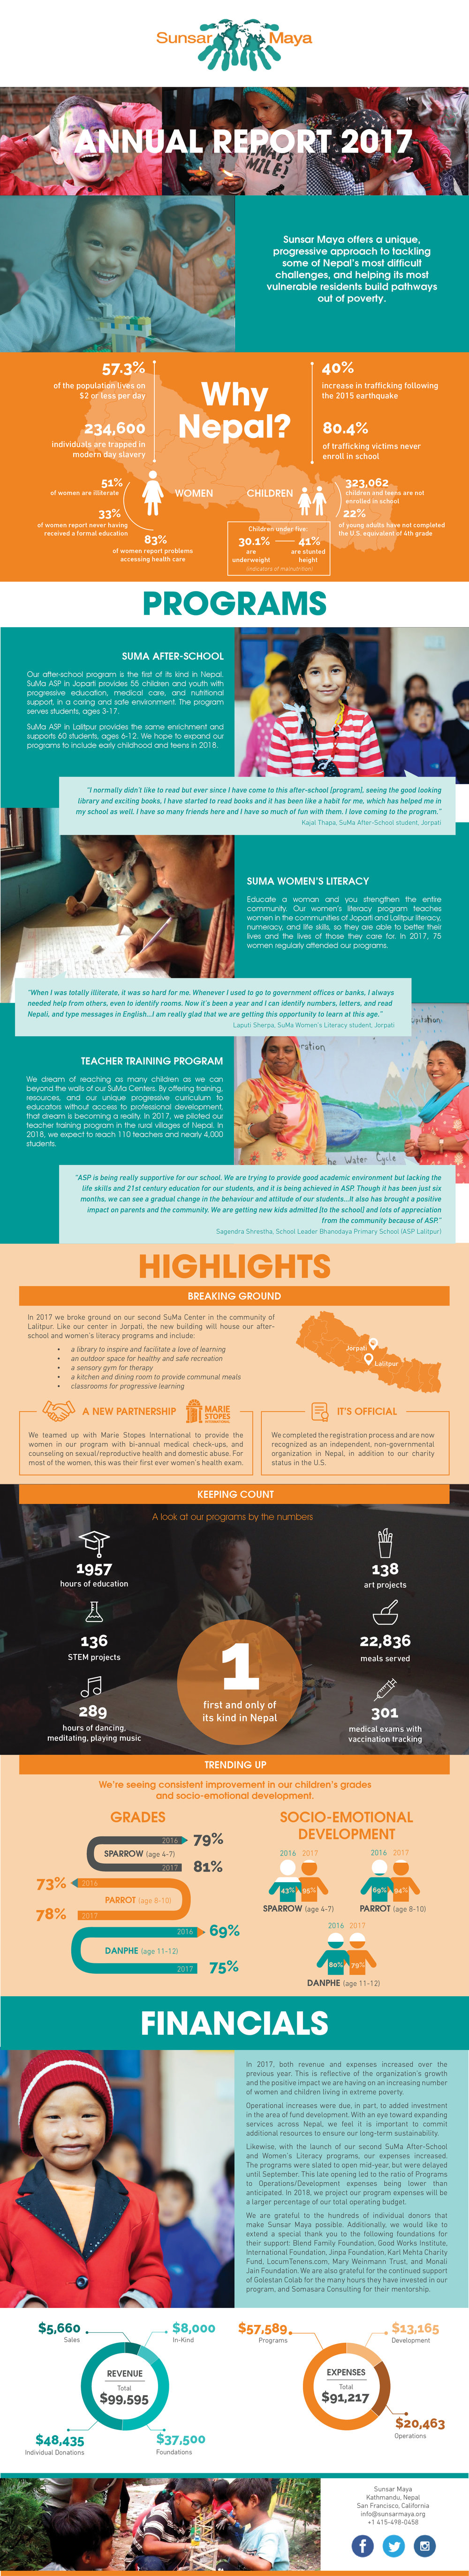 Sunsar_Maya_Annual_Report_2018 (3).jpg